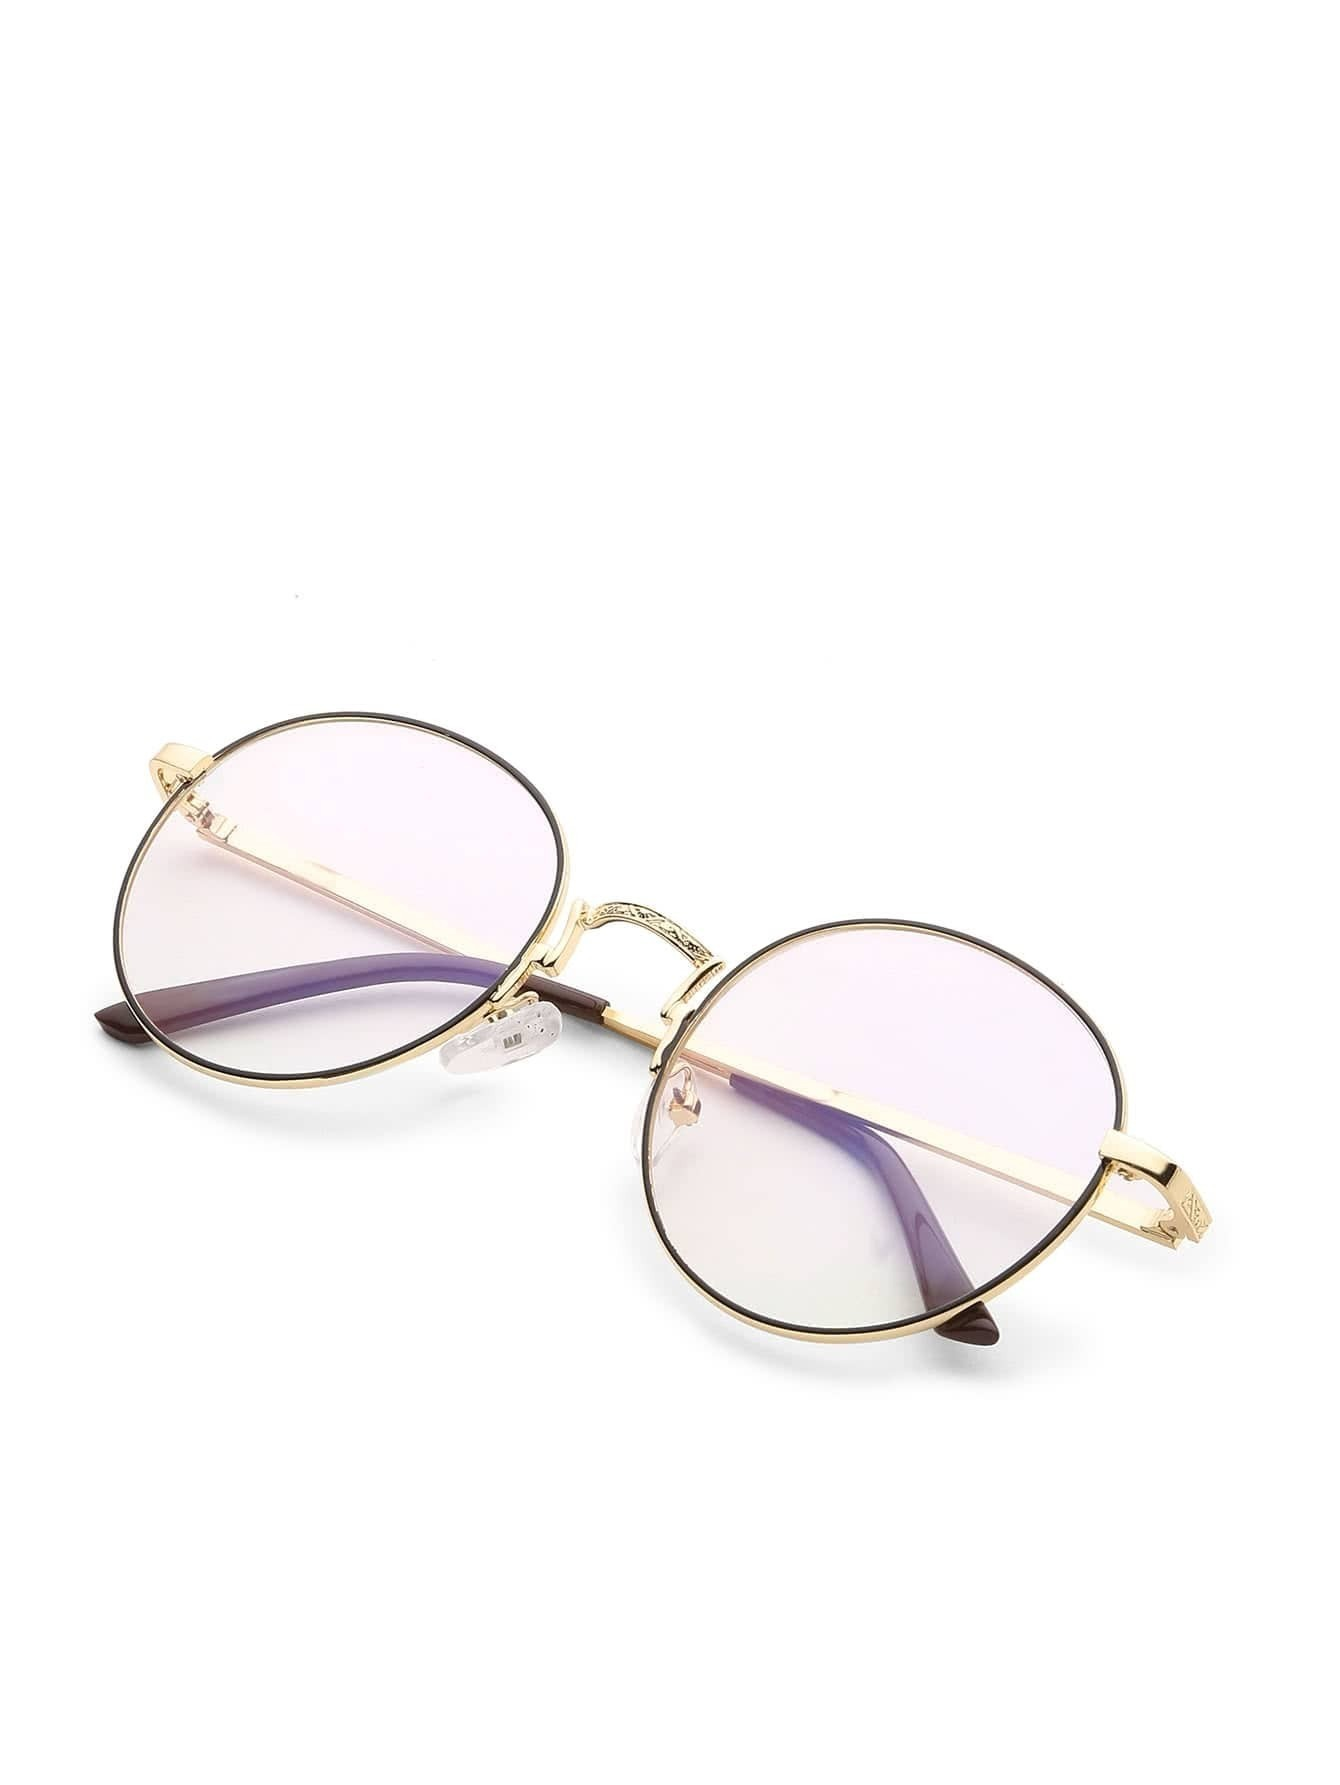 Round Lens Tinted Glasses